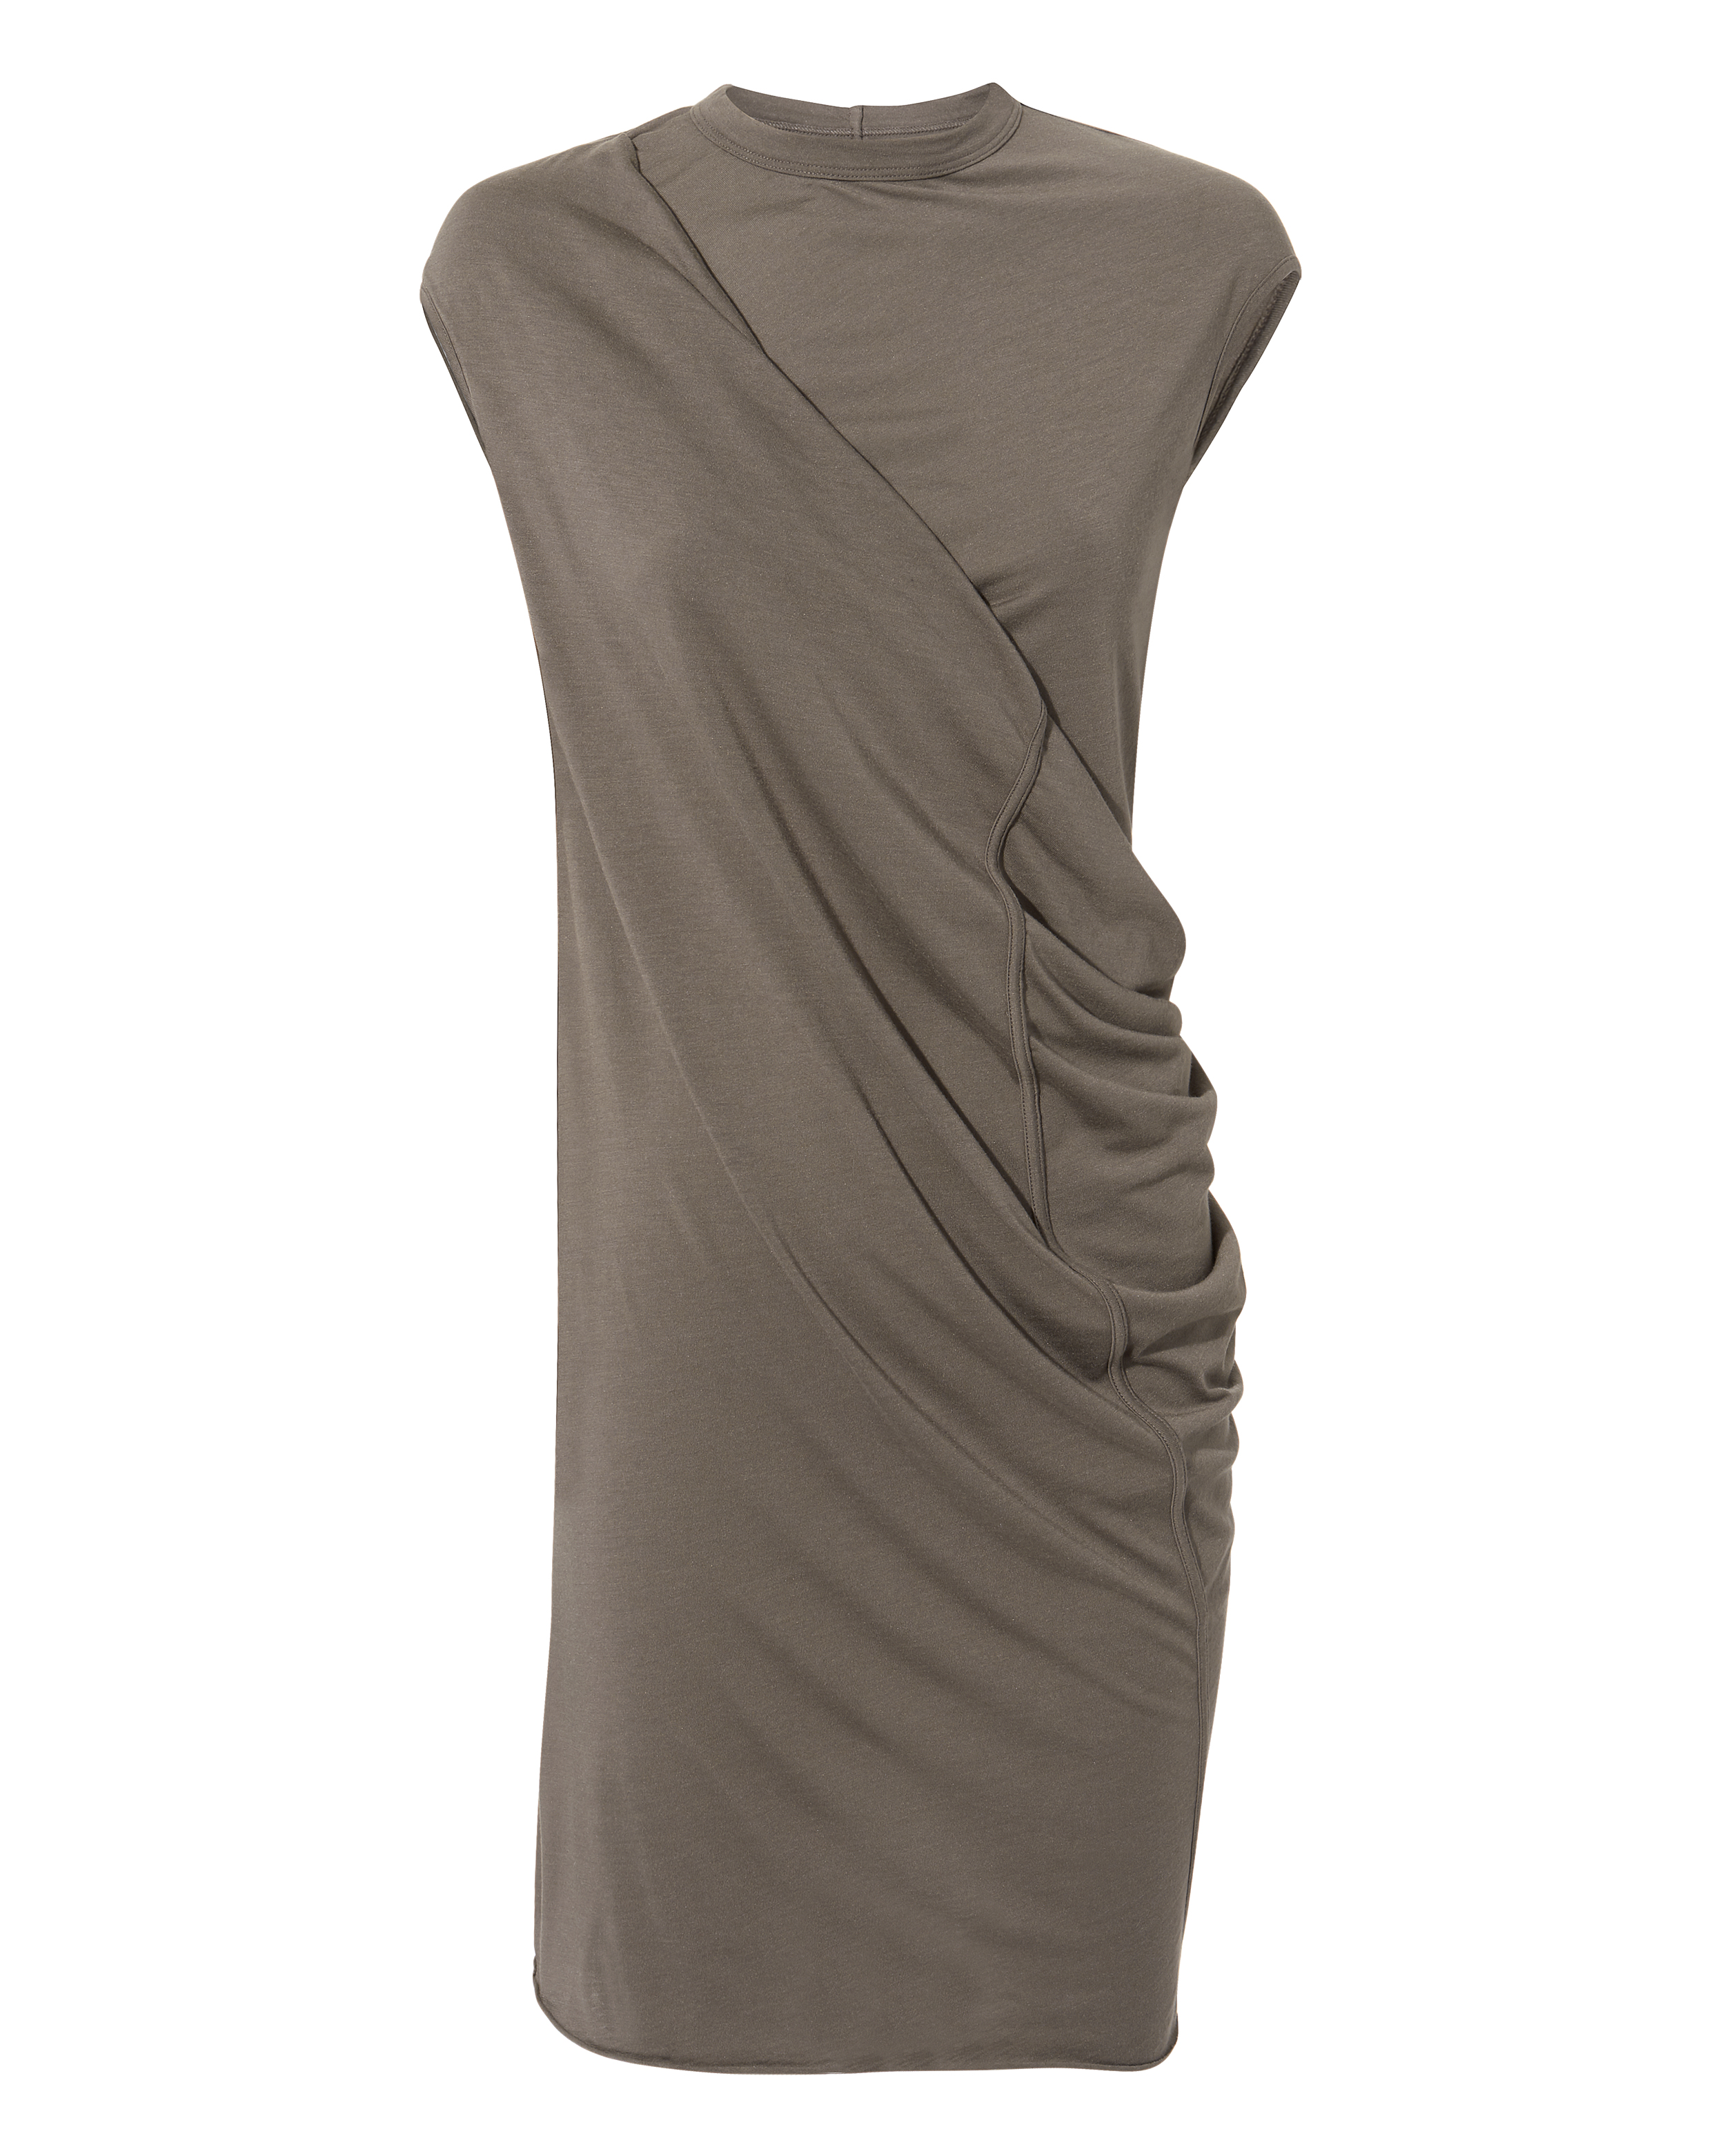 Gathered Tunic Dress by Rick Owens Lilies